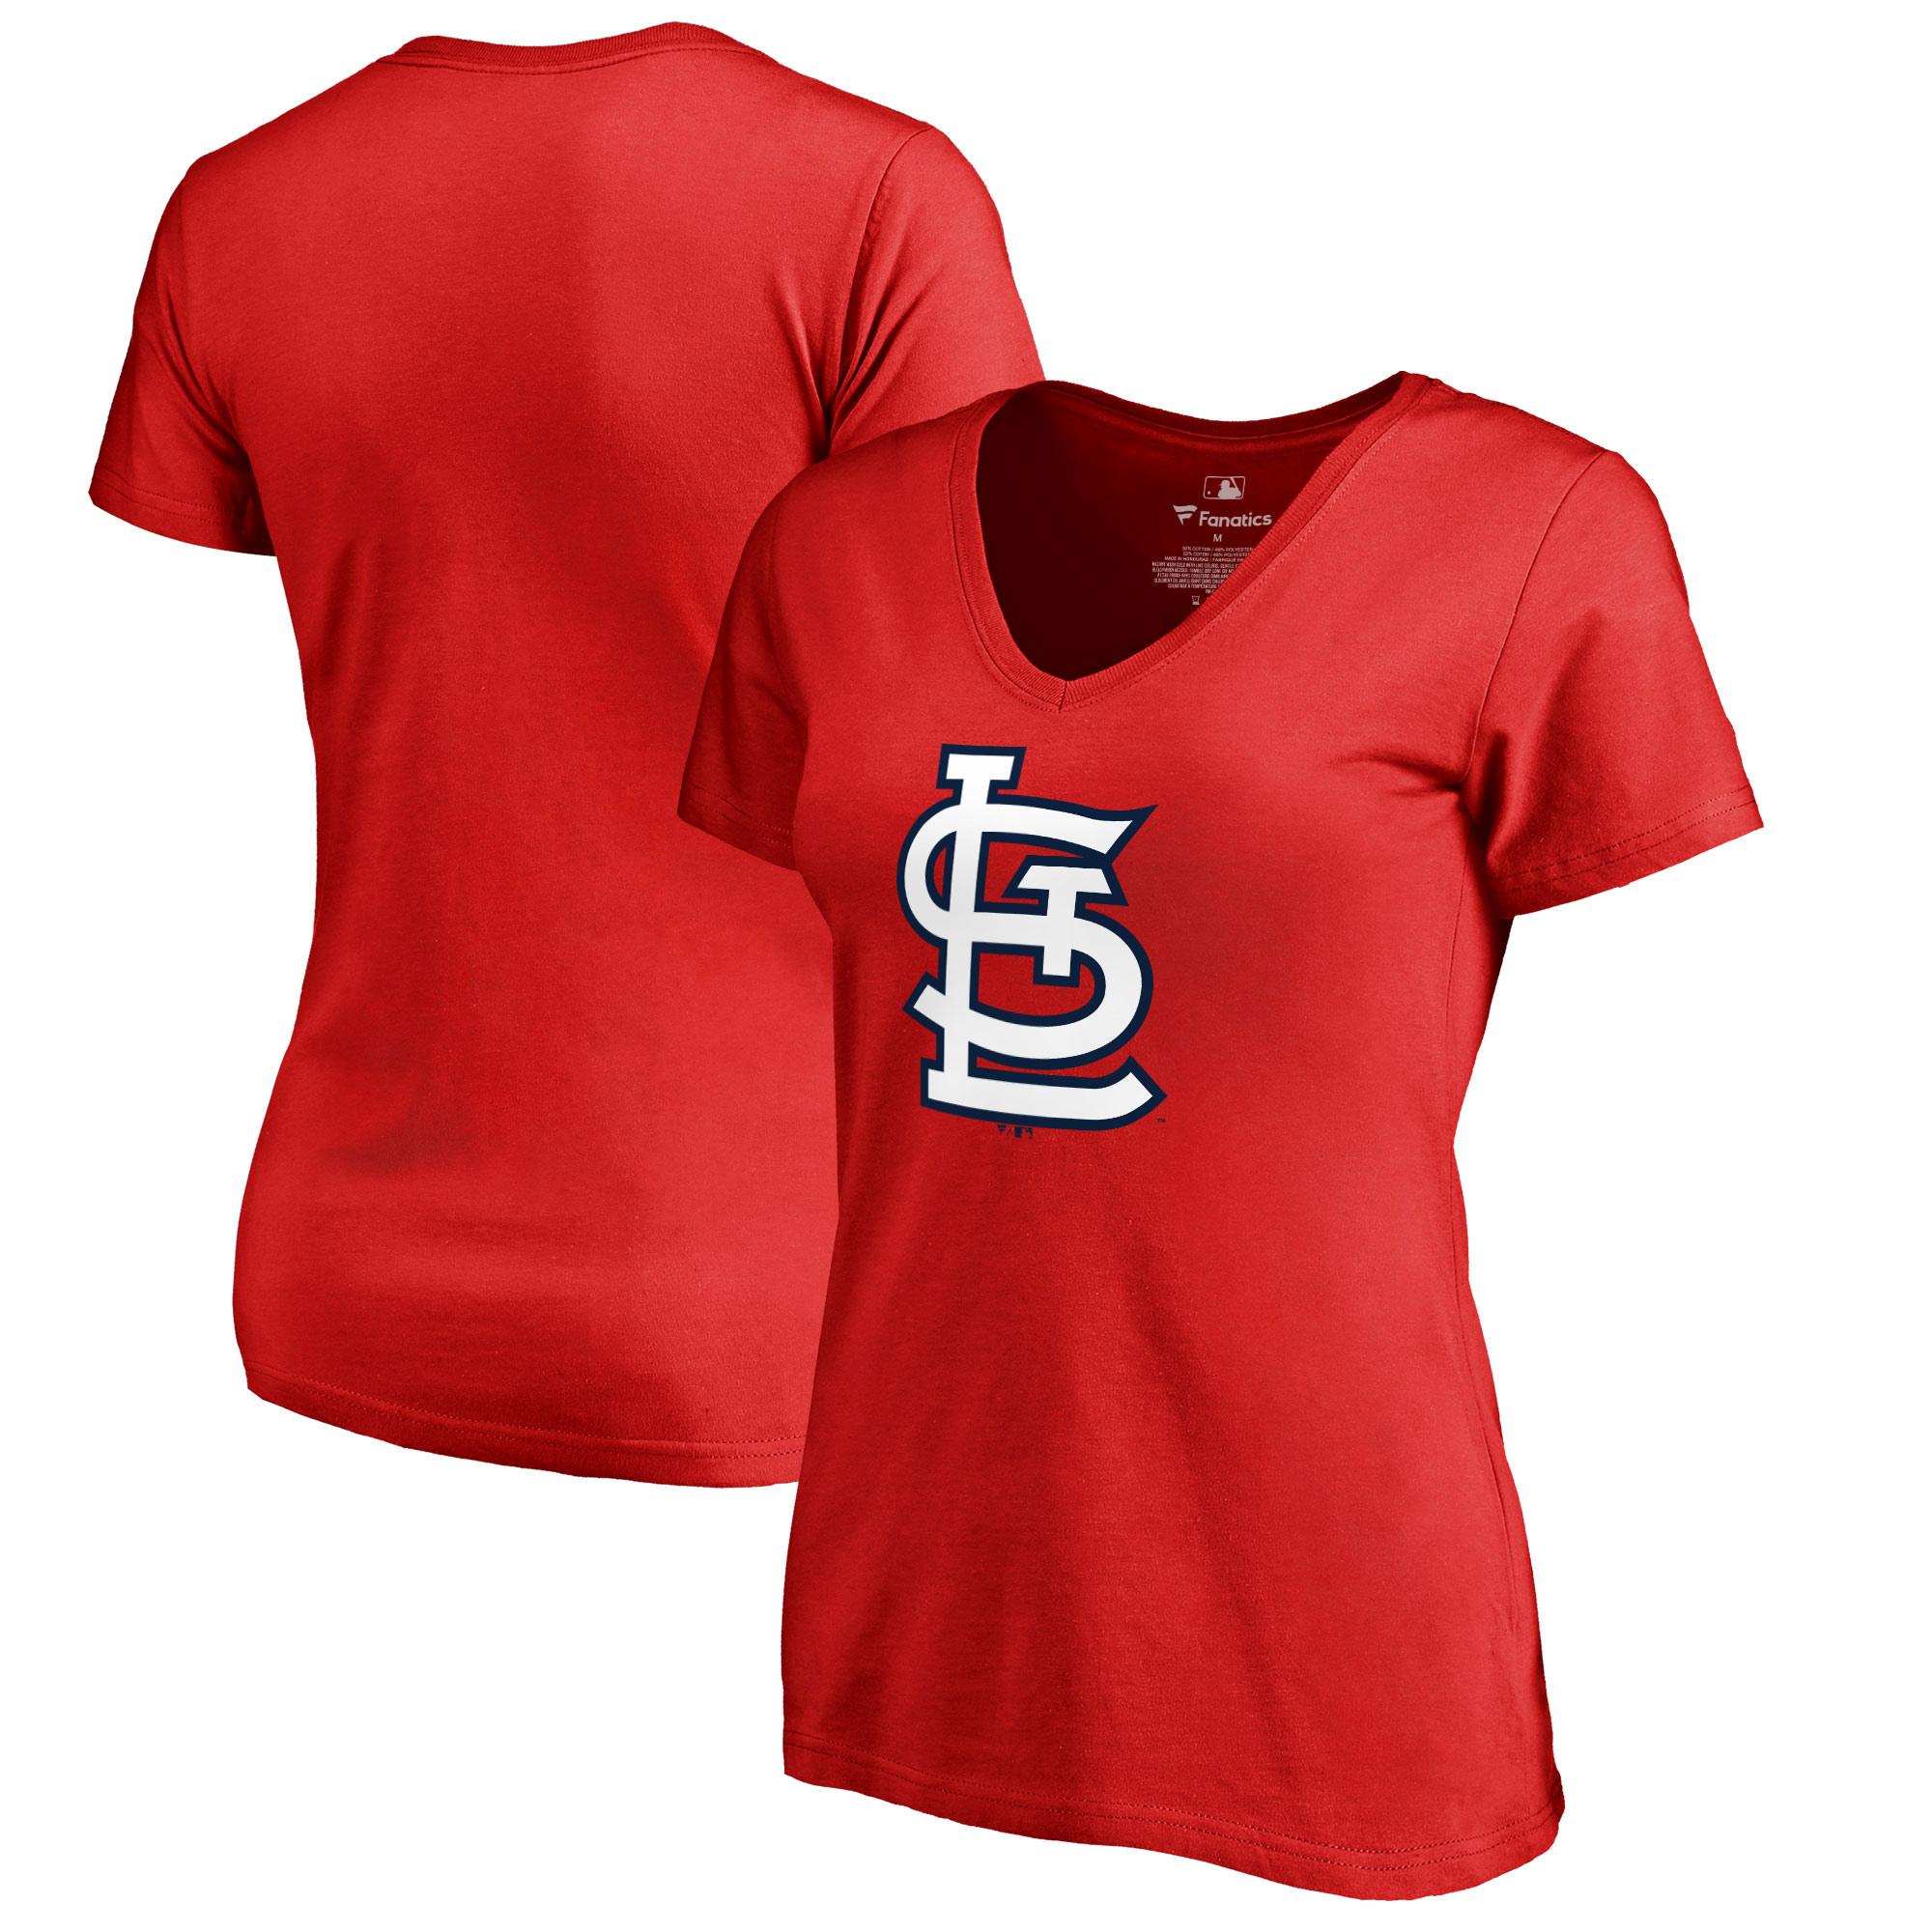 St. Louis Cardinals Women's Primary Logo T-Shirt - Red